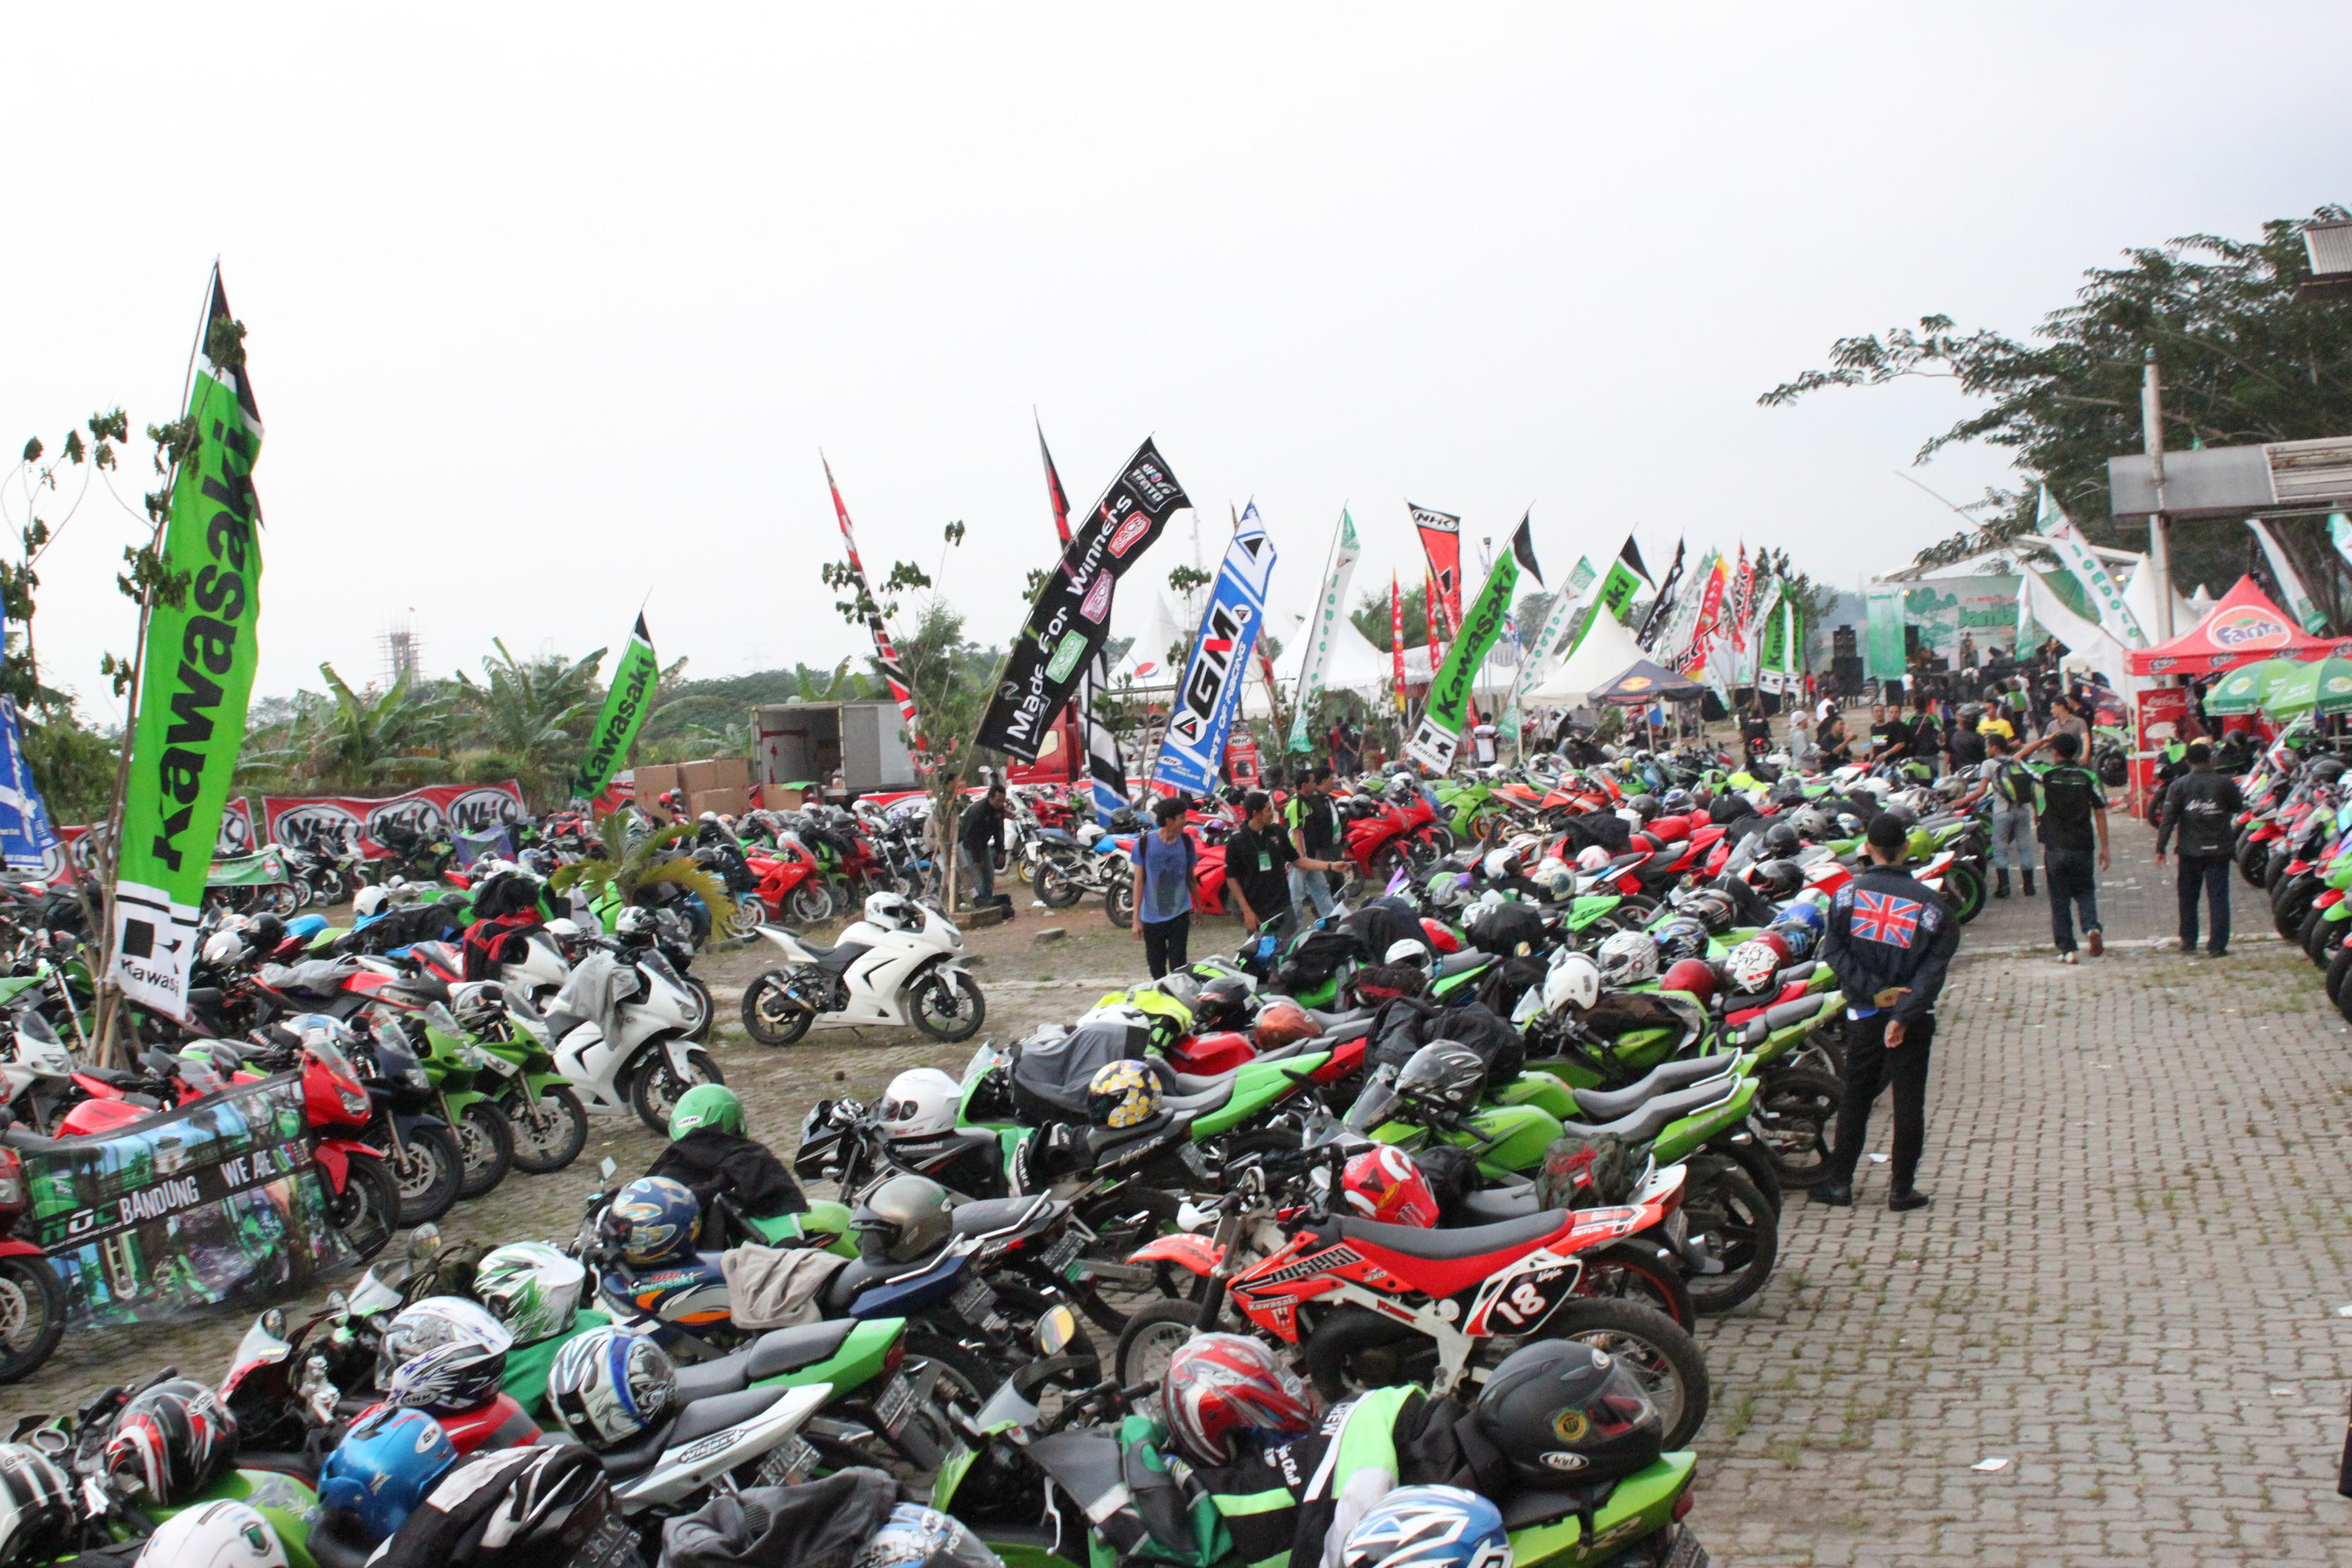 Codot Modifikasi Motor Download Koleksi 84 Gambar Motor Club